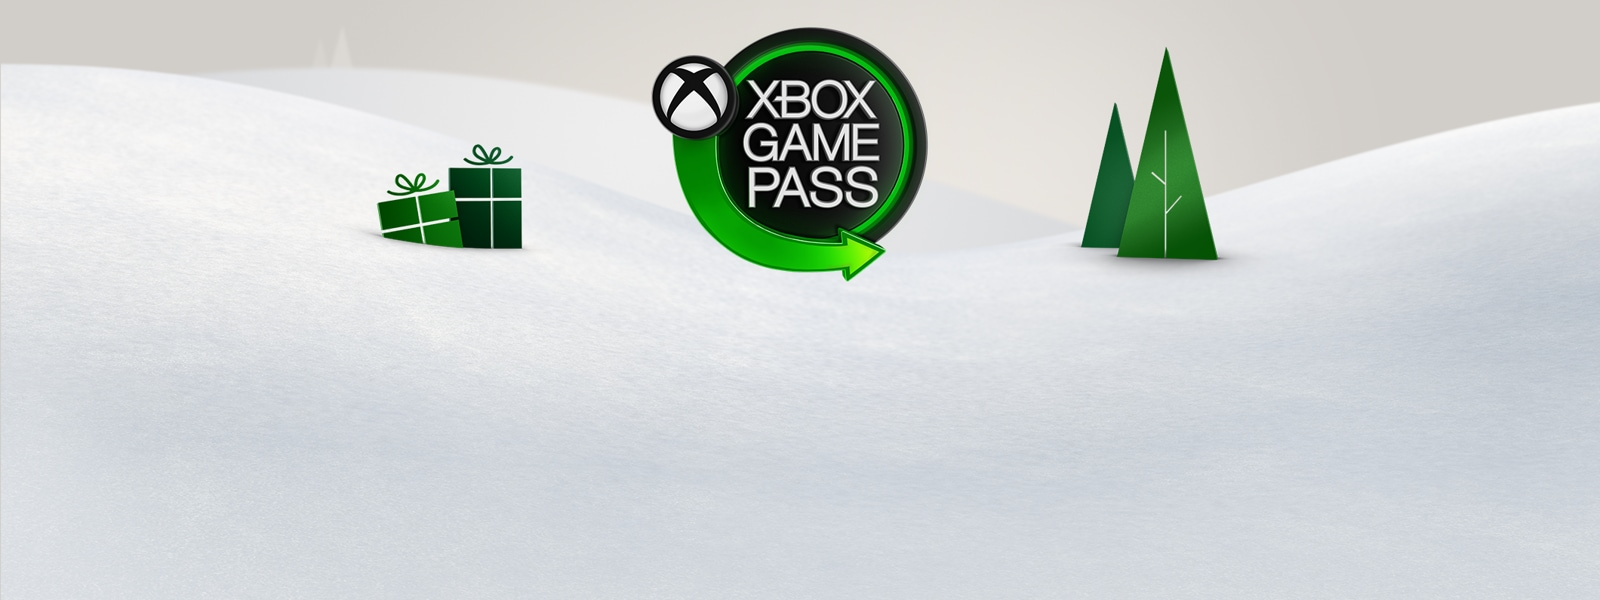 Das Xbox Game Pass-Logo